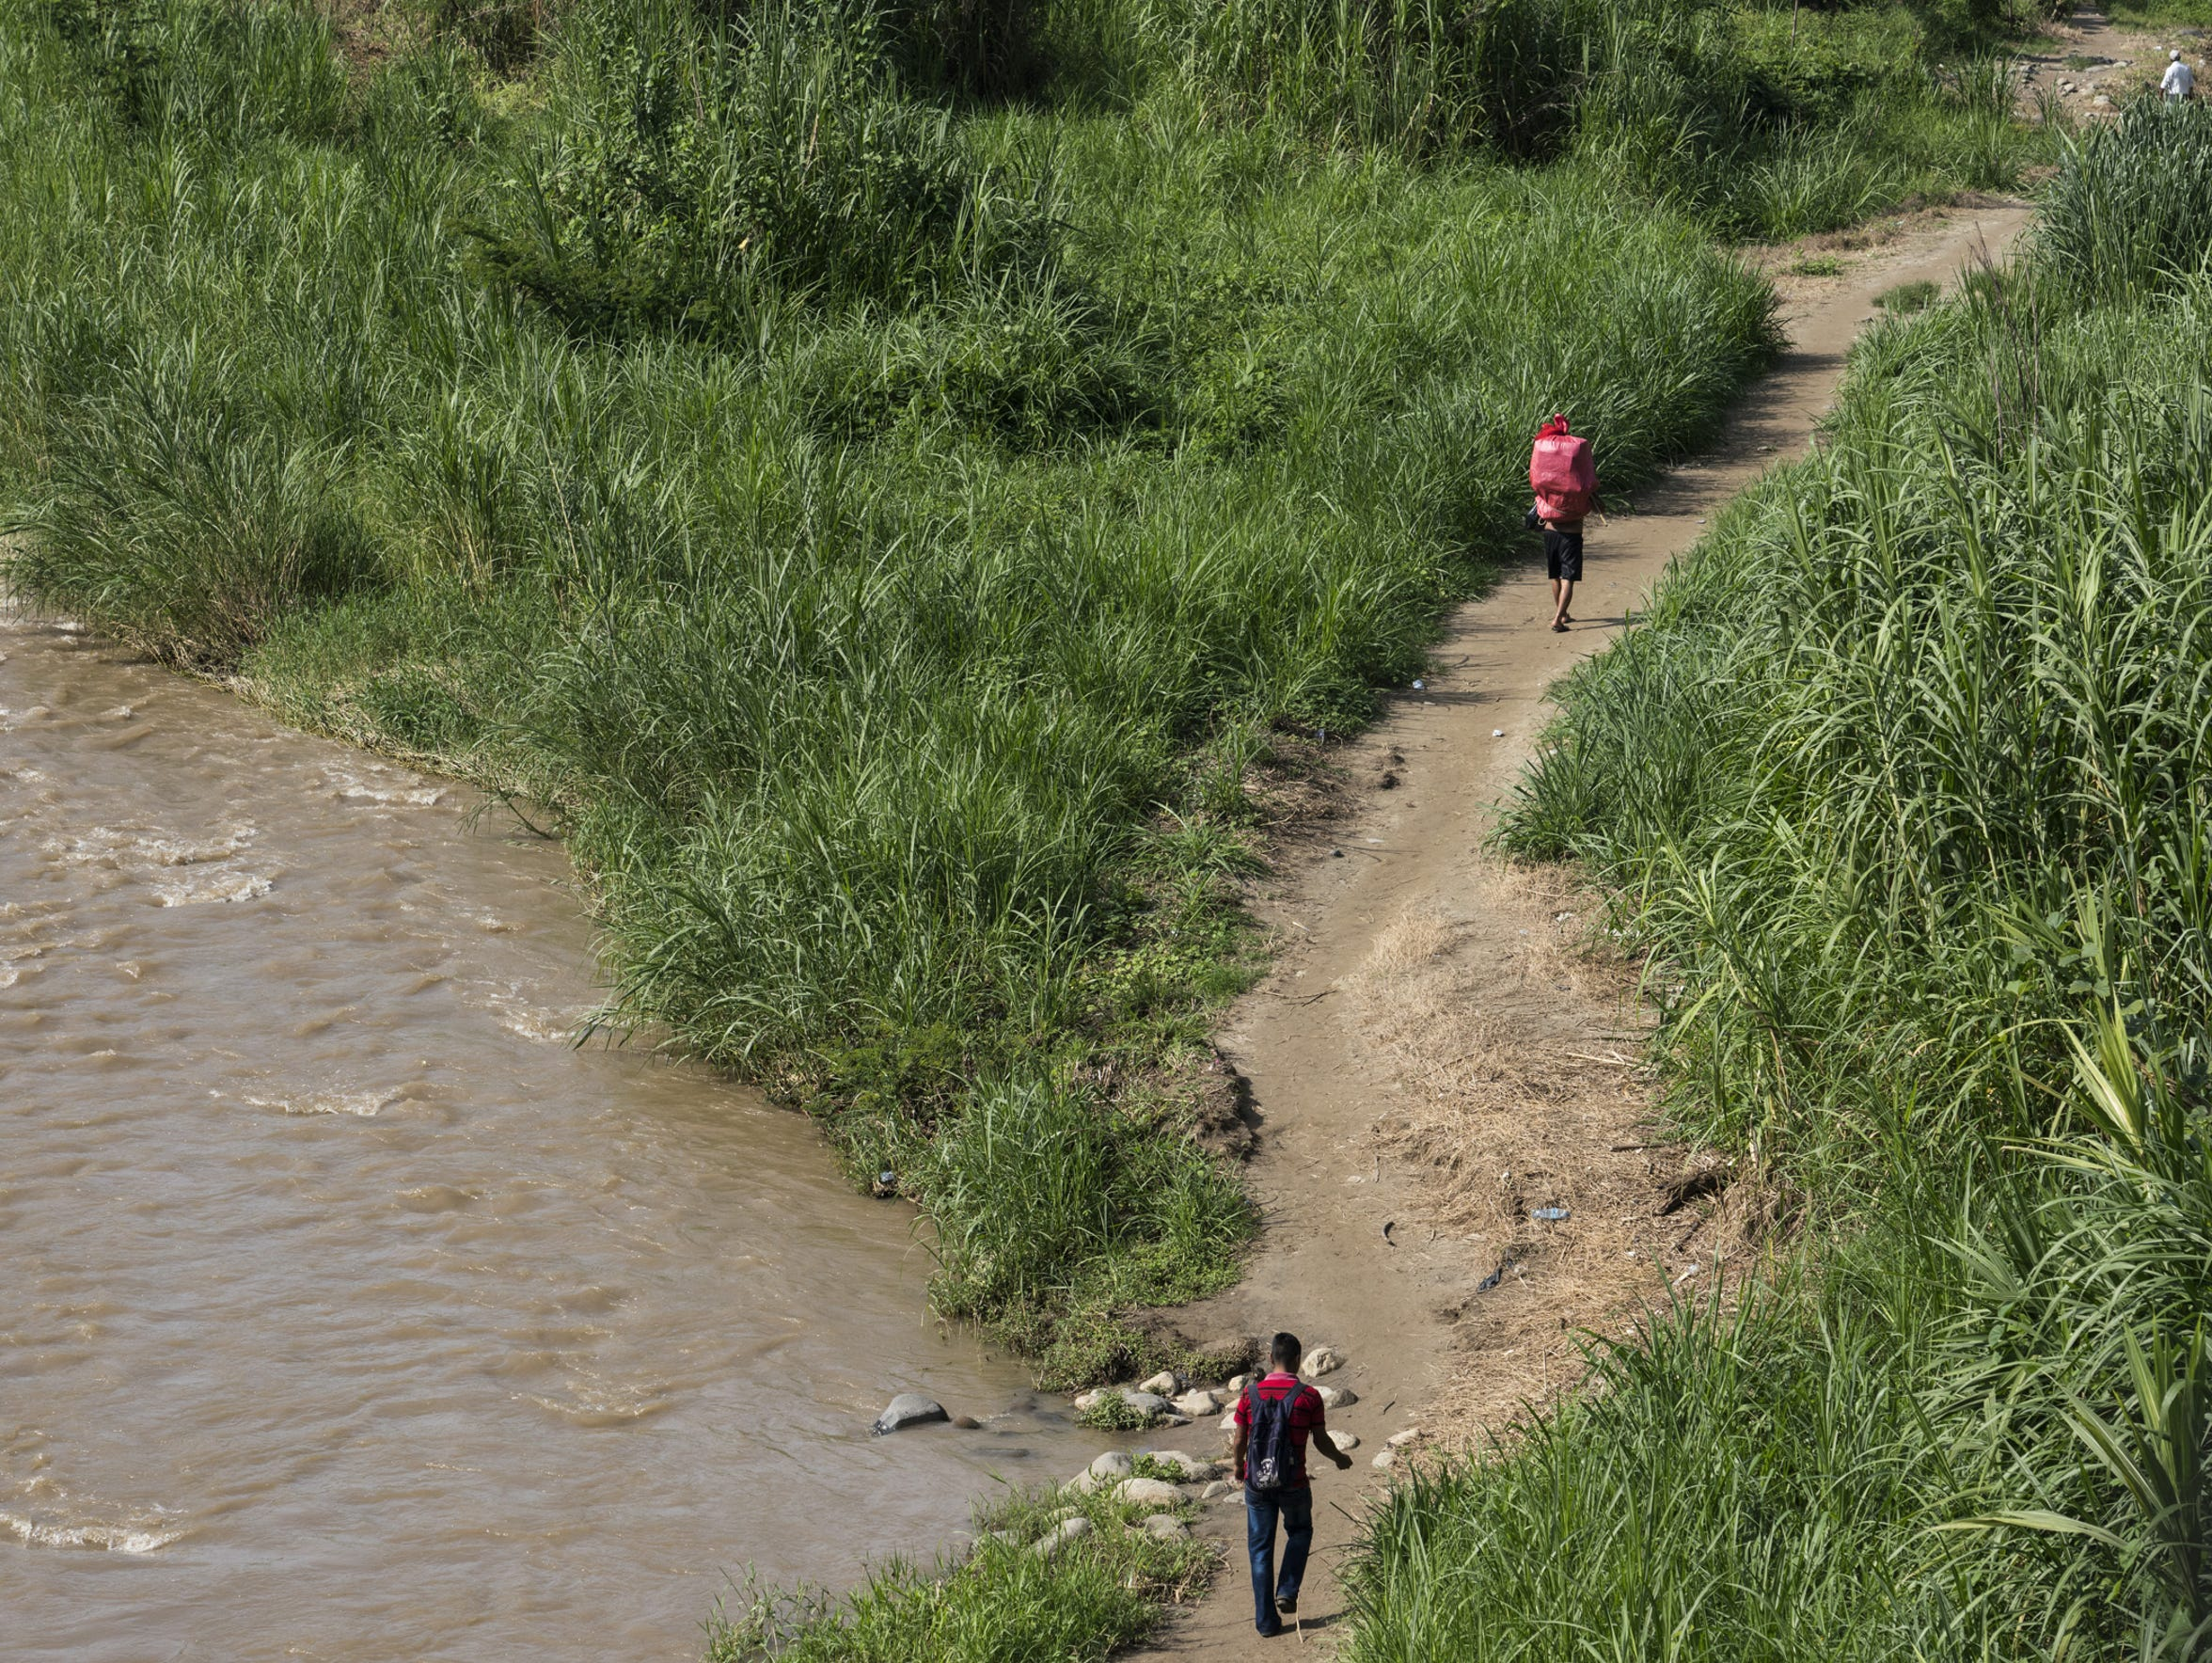 Once they cross the Suchiate River into Mexico, many